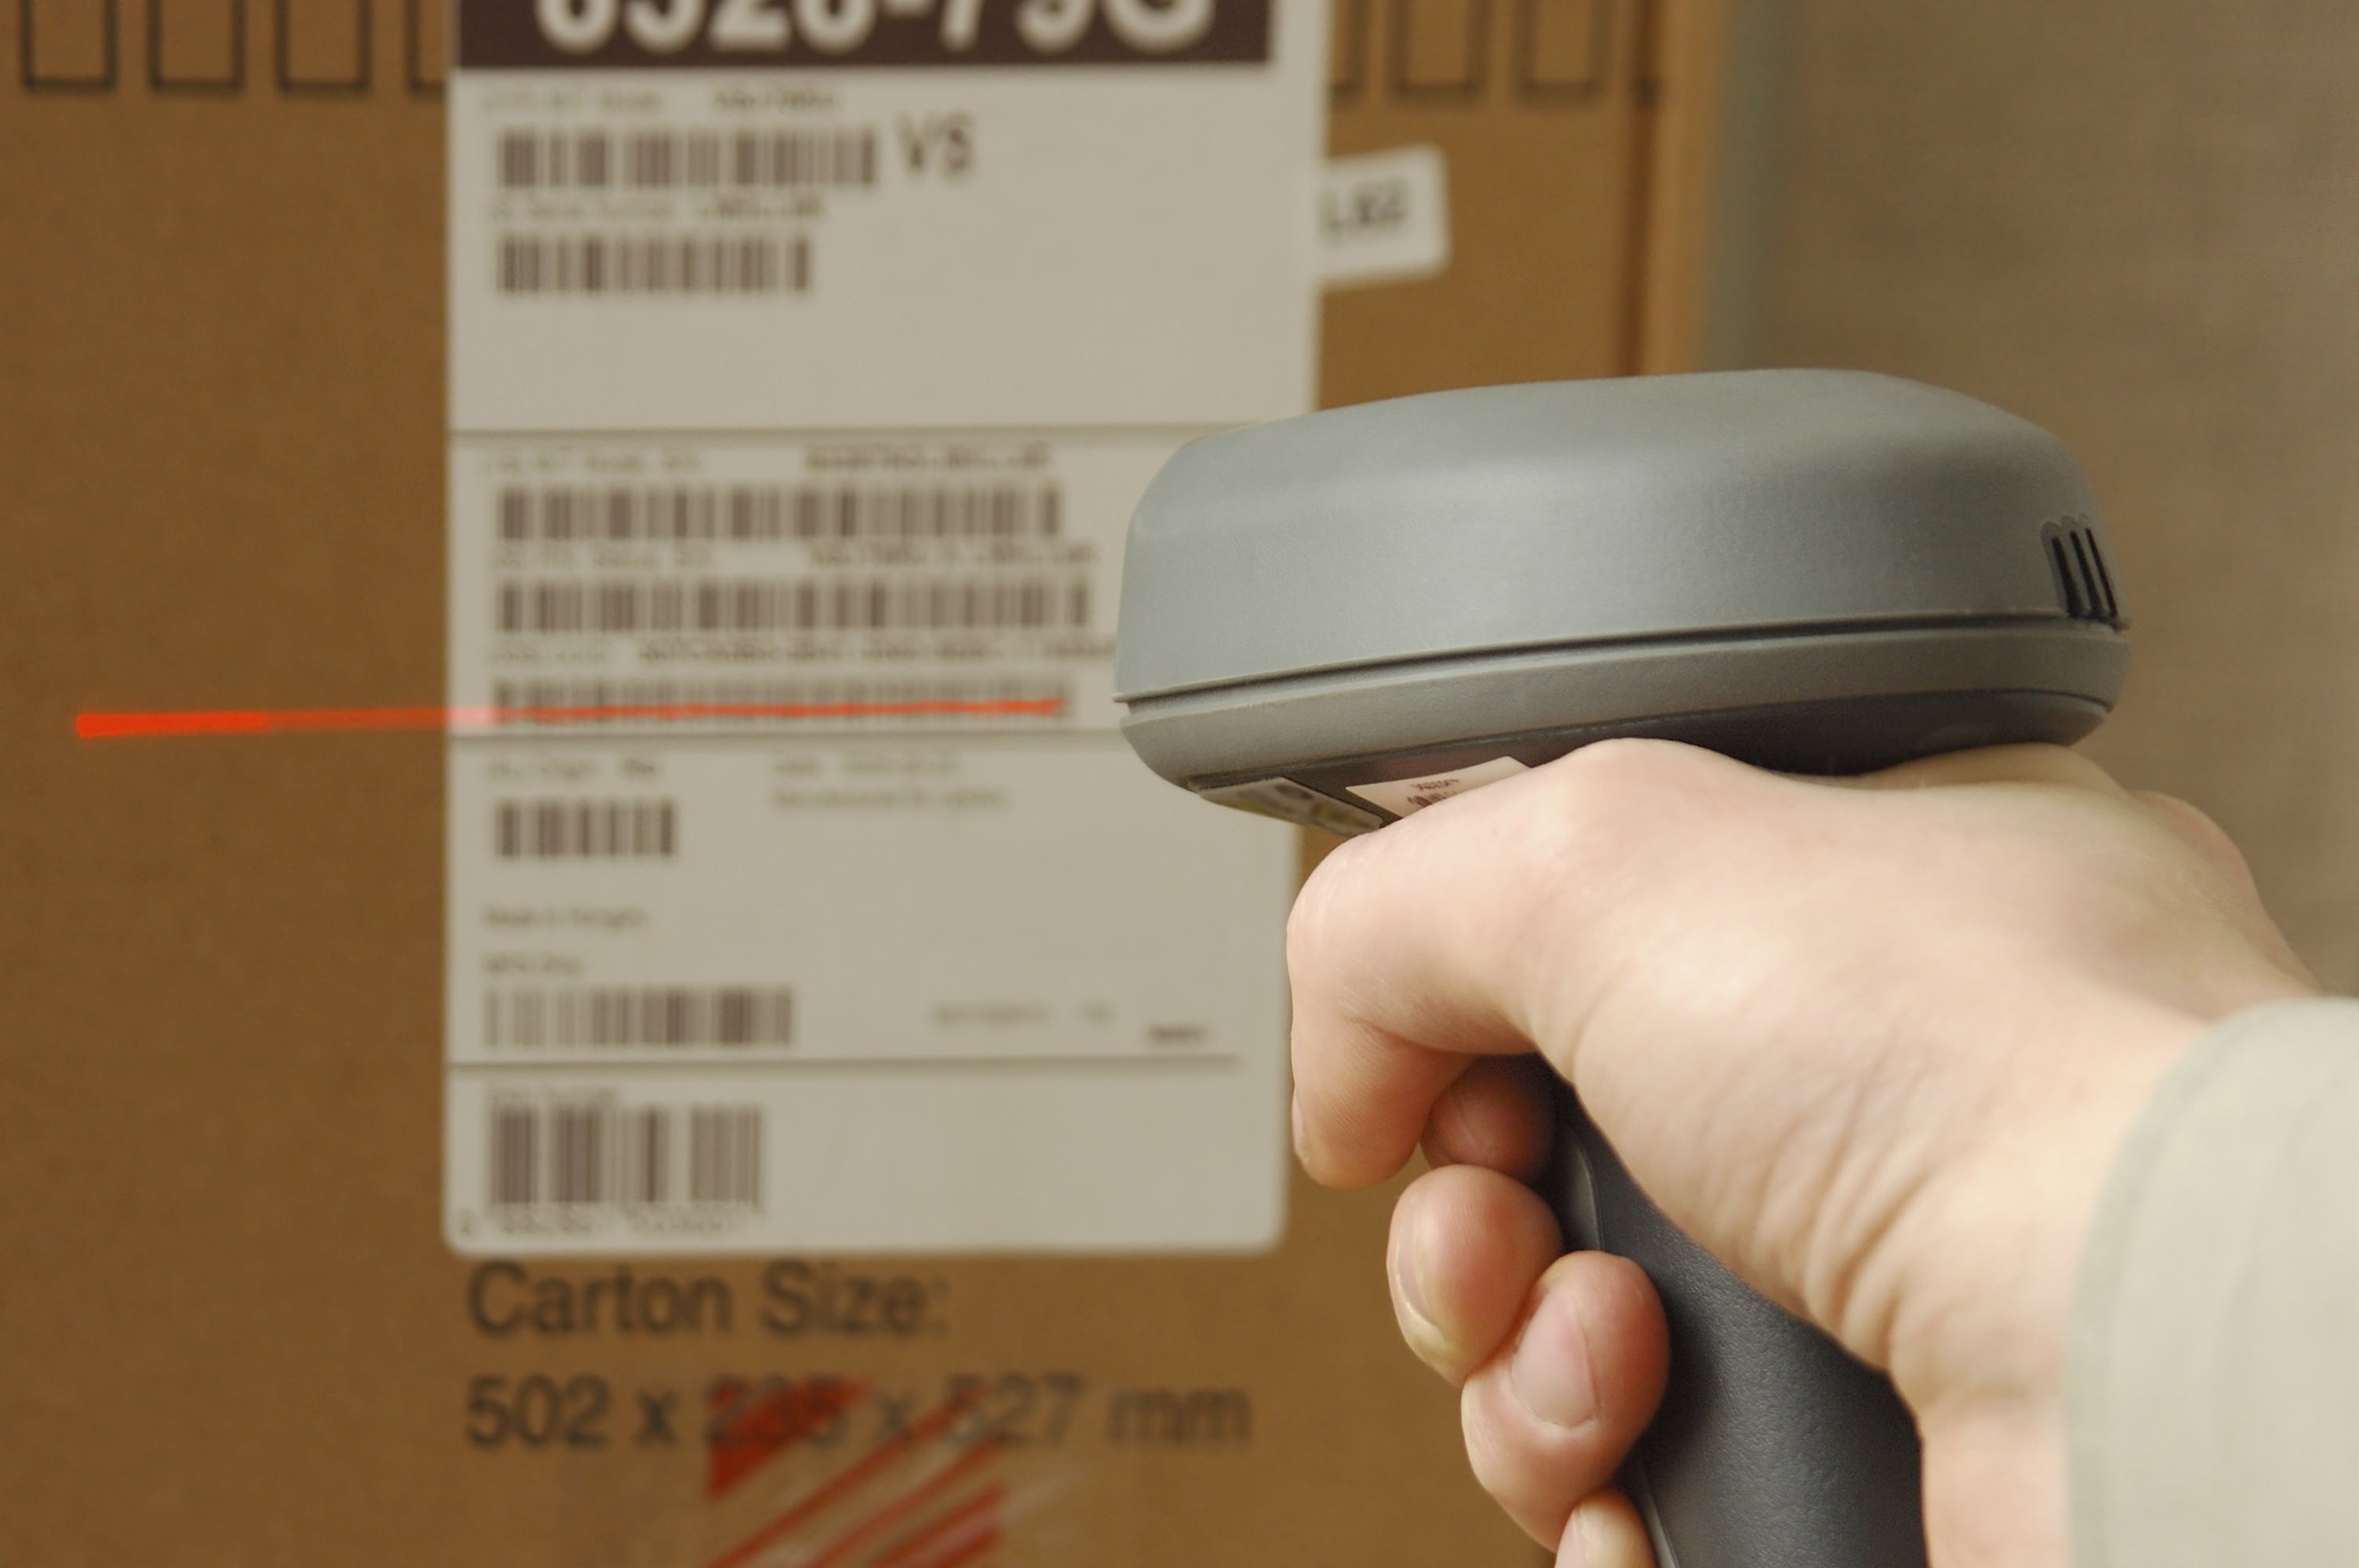 How to Check a SKU Number   Bizfluent